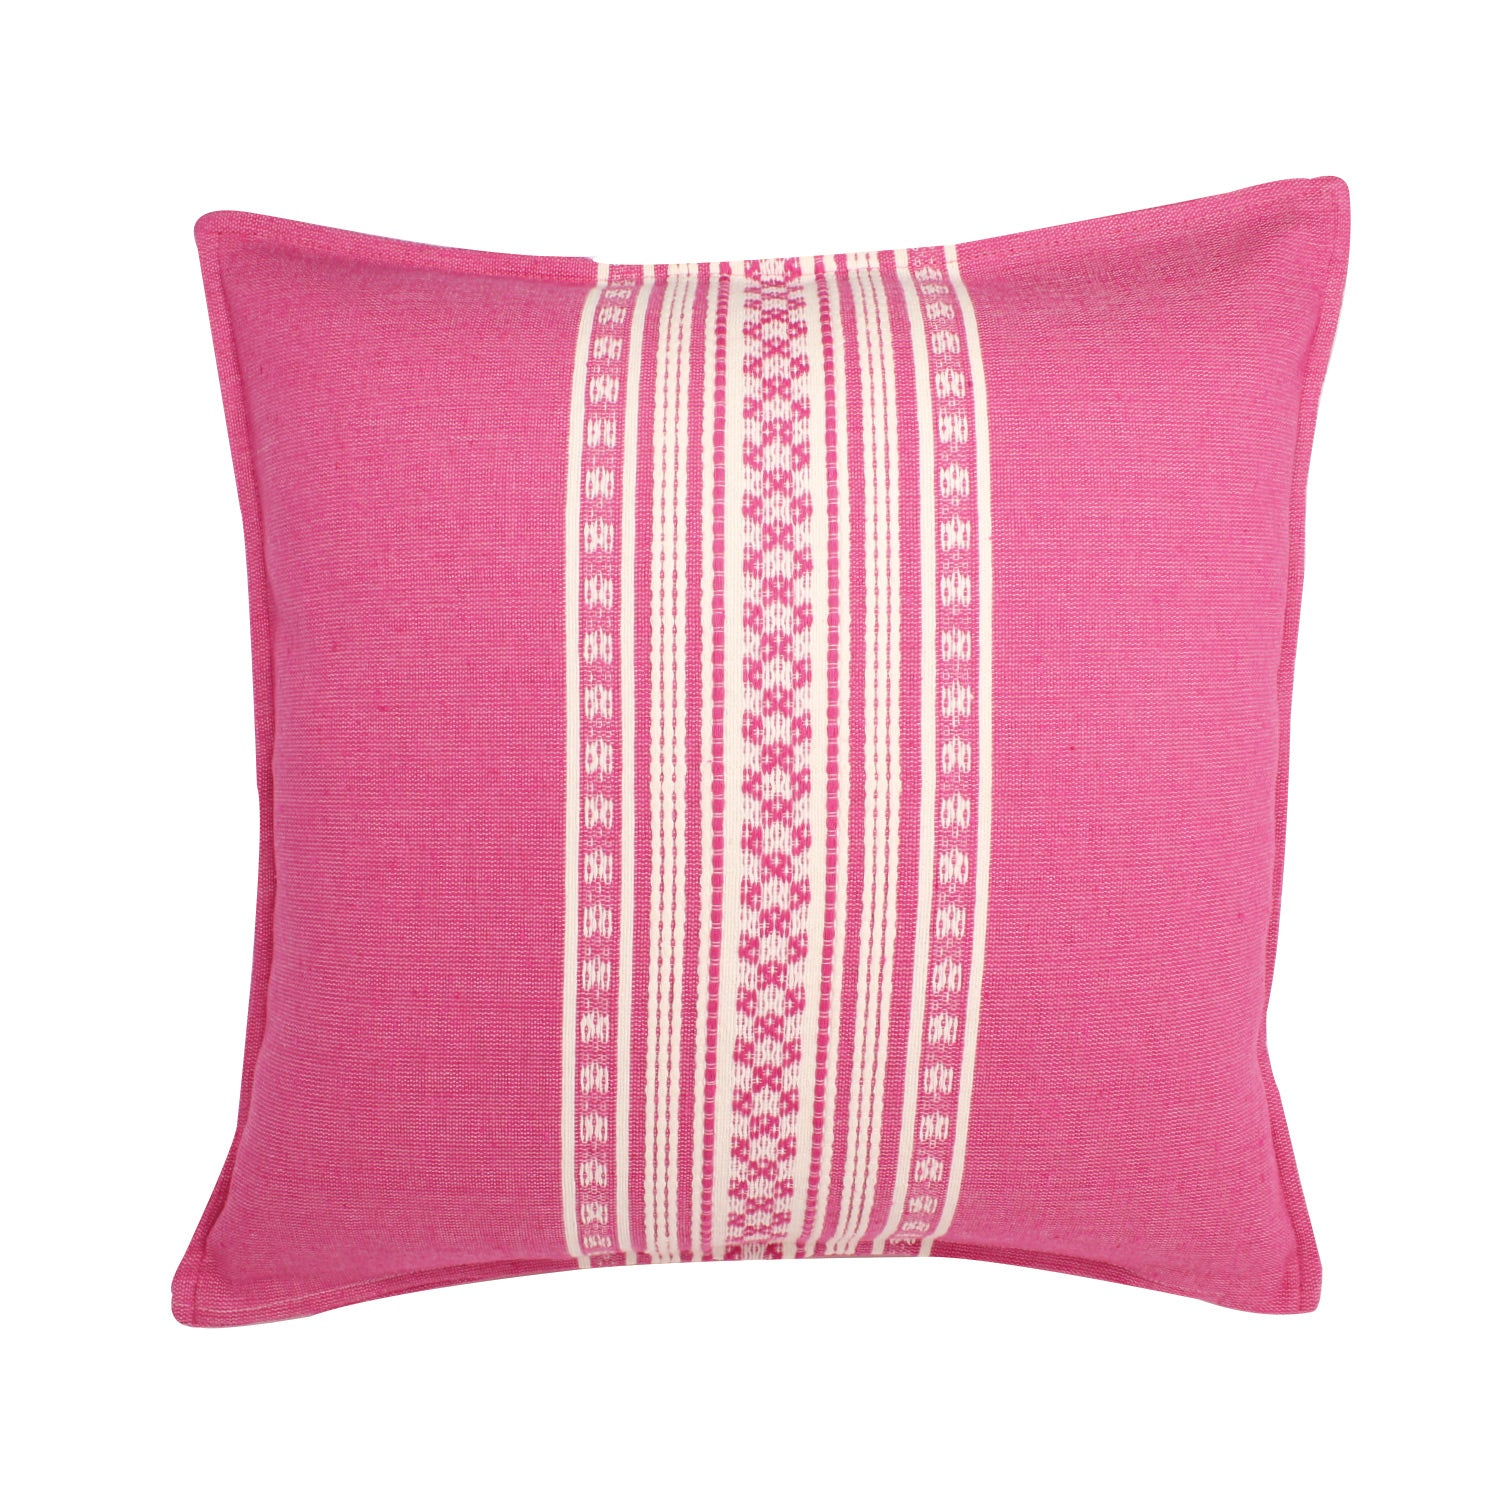 Nubari Handwoven Pillow - Fuchsia